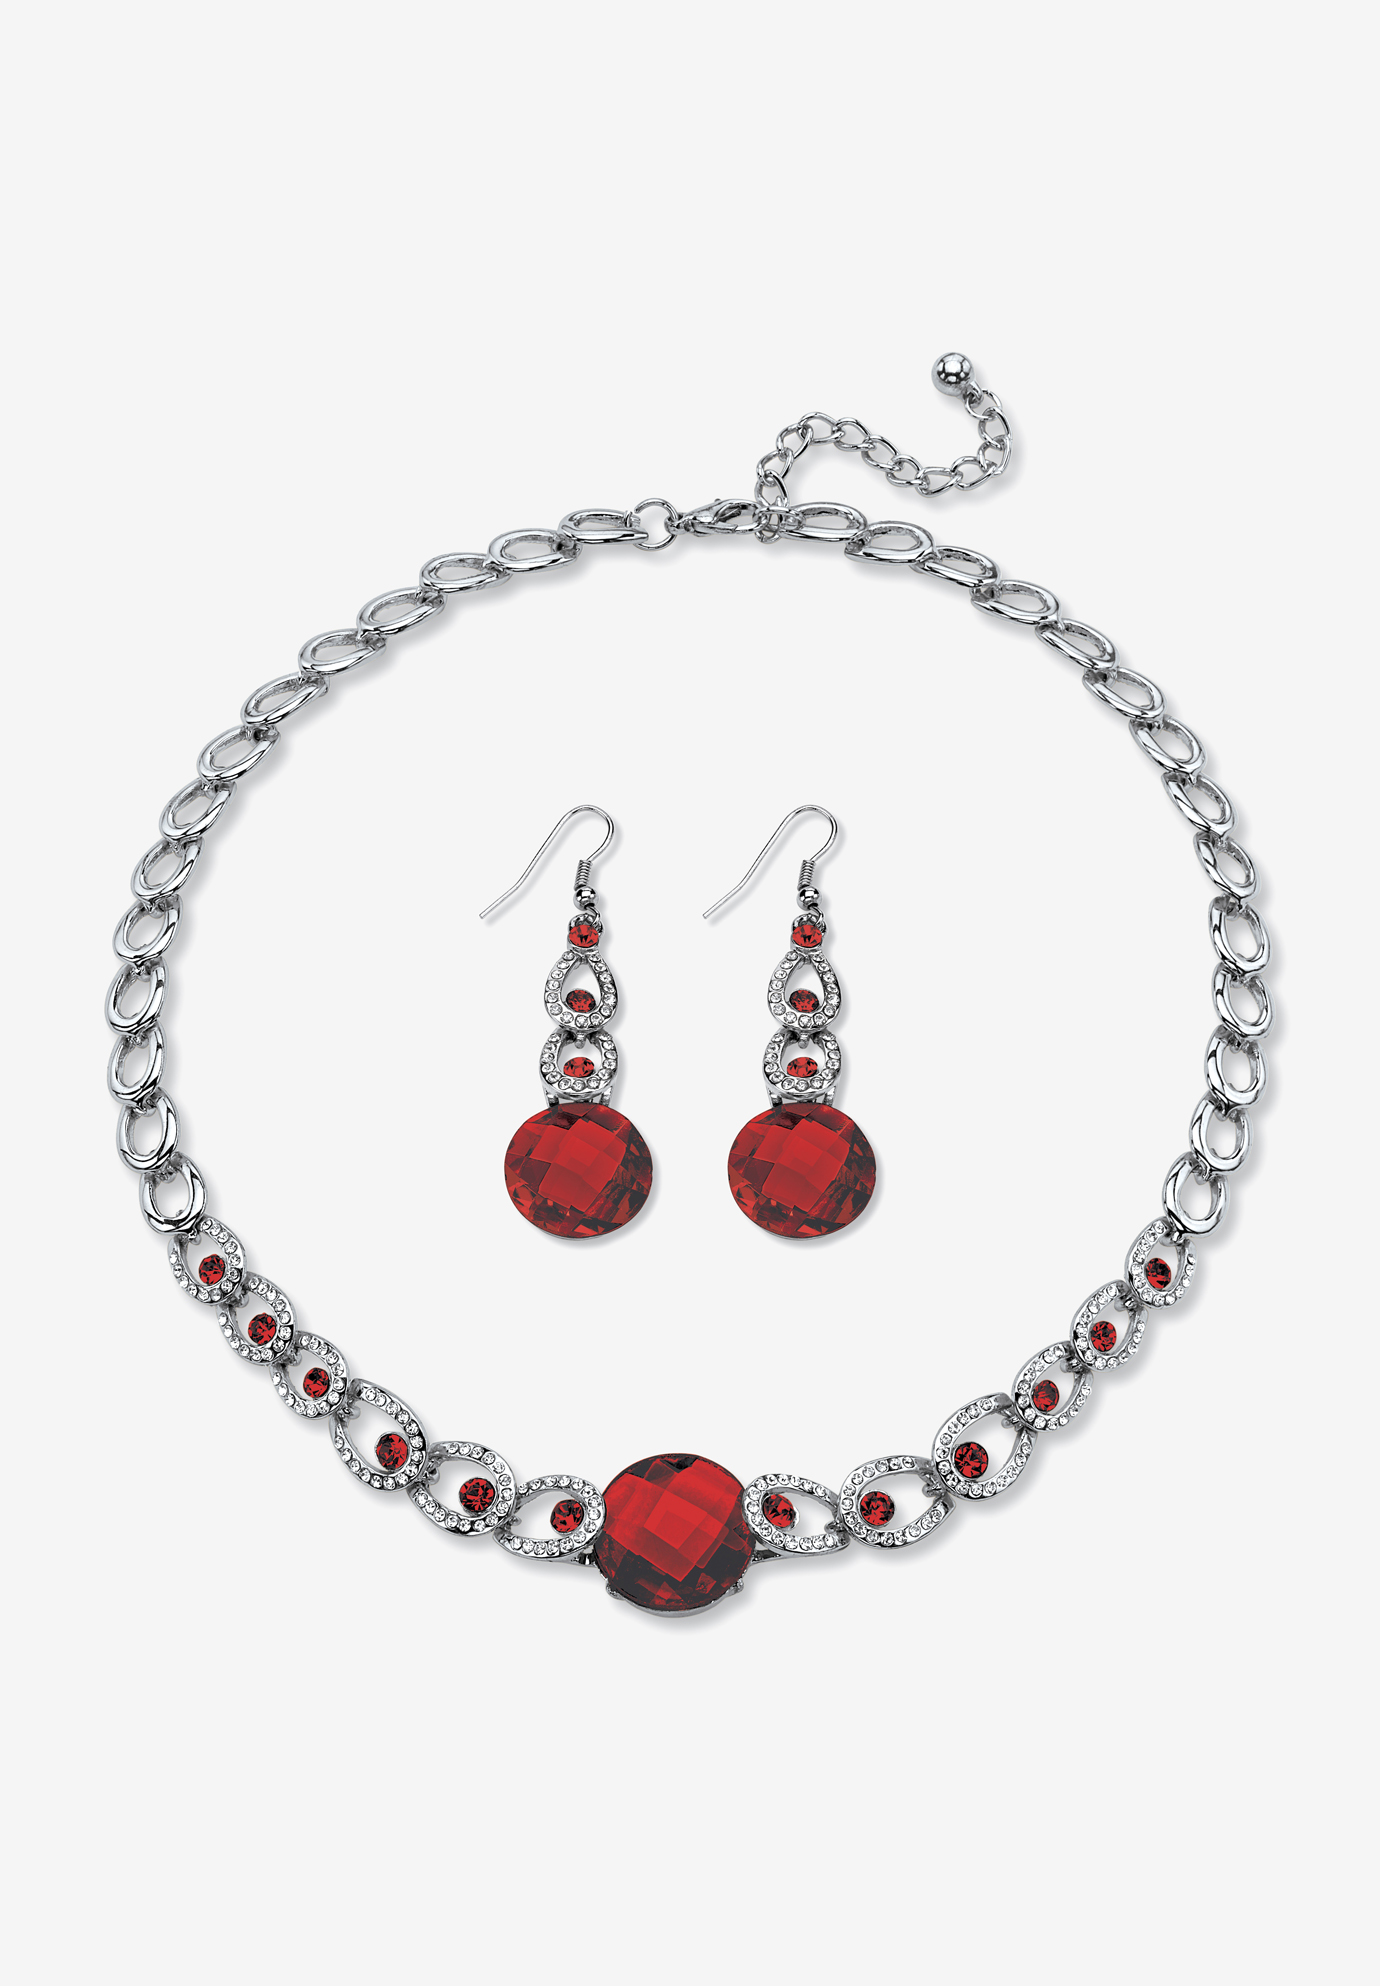 Silver Tone Collar Necklace and Earring Set, Simulated Birthstone, GARNET